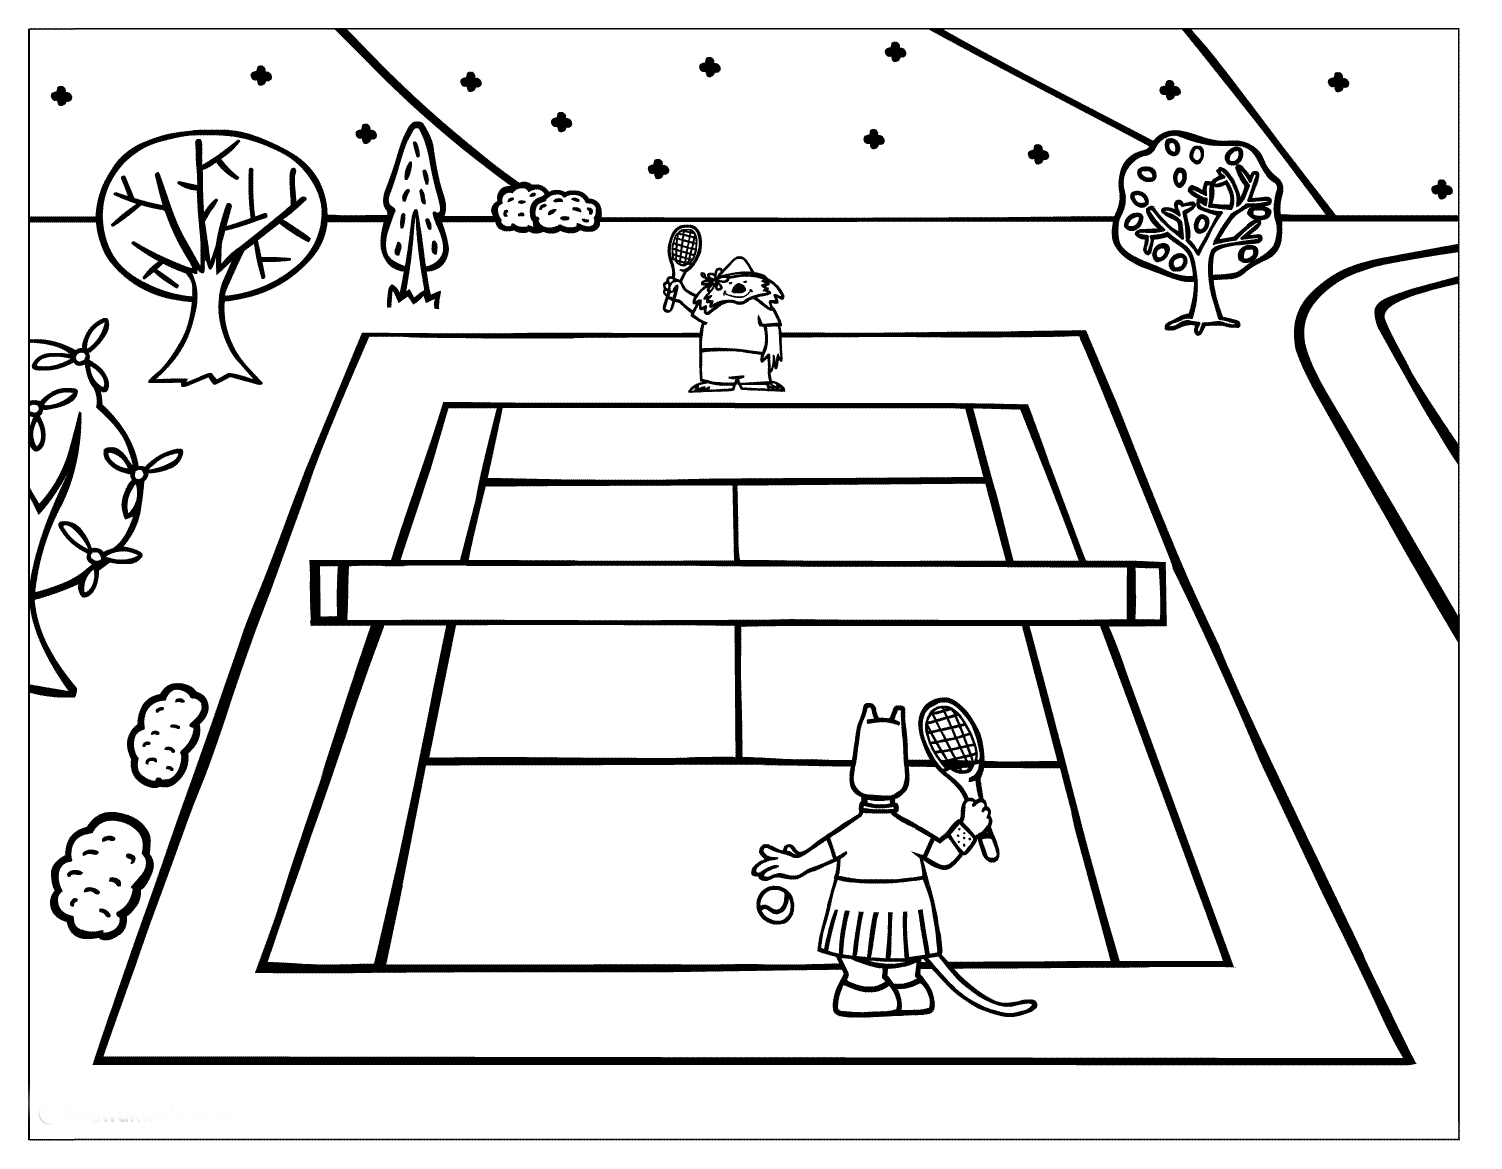 Animated Tennis Game